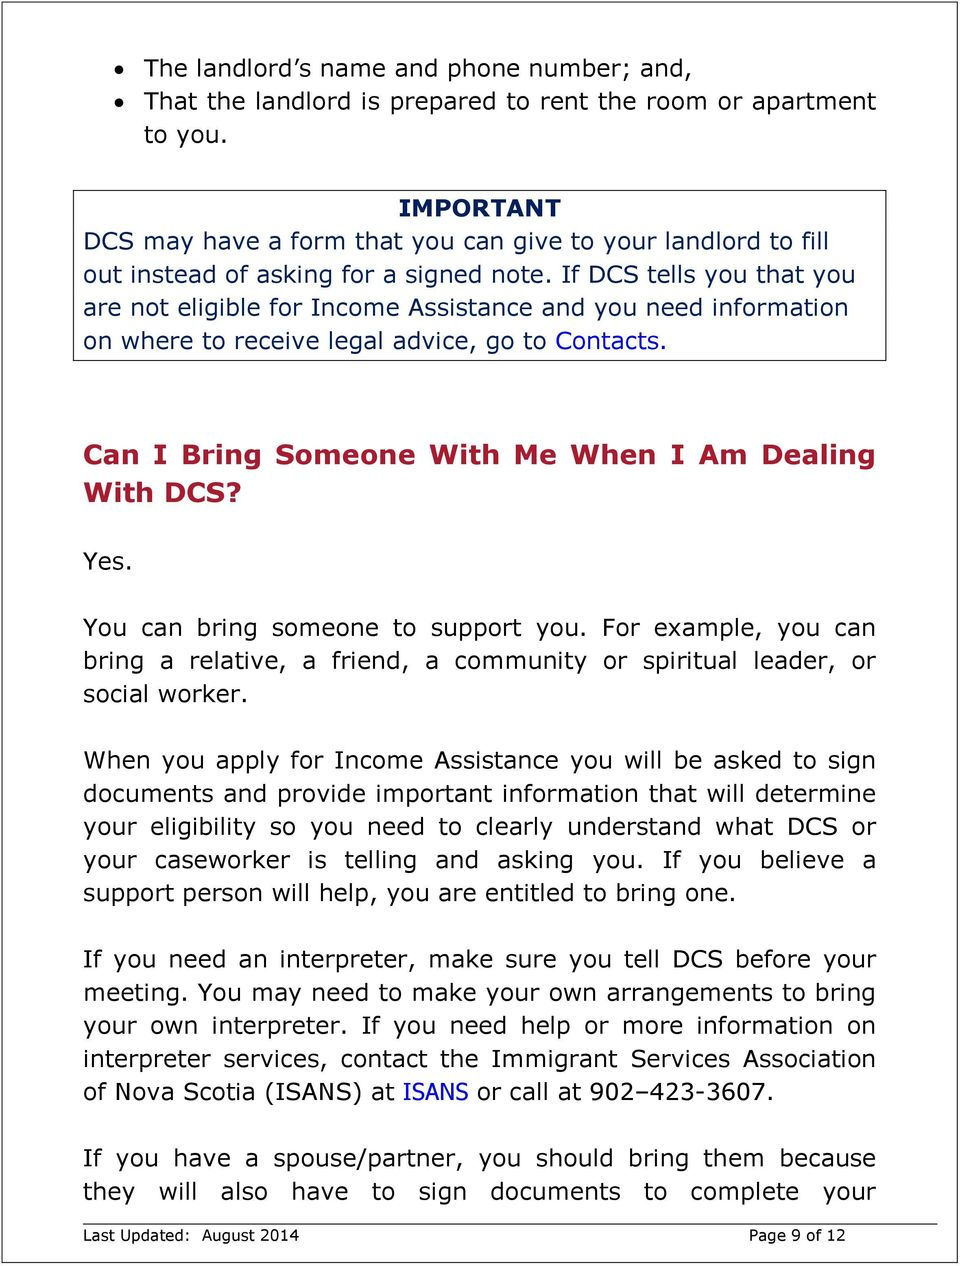 If DCS tells you that you are not eligible for Income Assistance and you need information on where to receive legal advice, go to Contacts. Can I Bring Someone With Me When I Am Dealing With DCS? Yes.